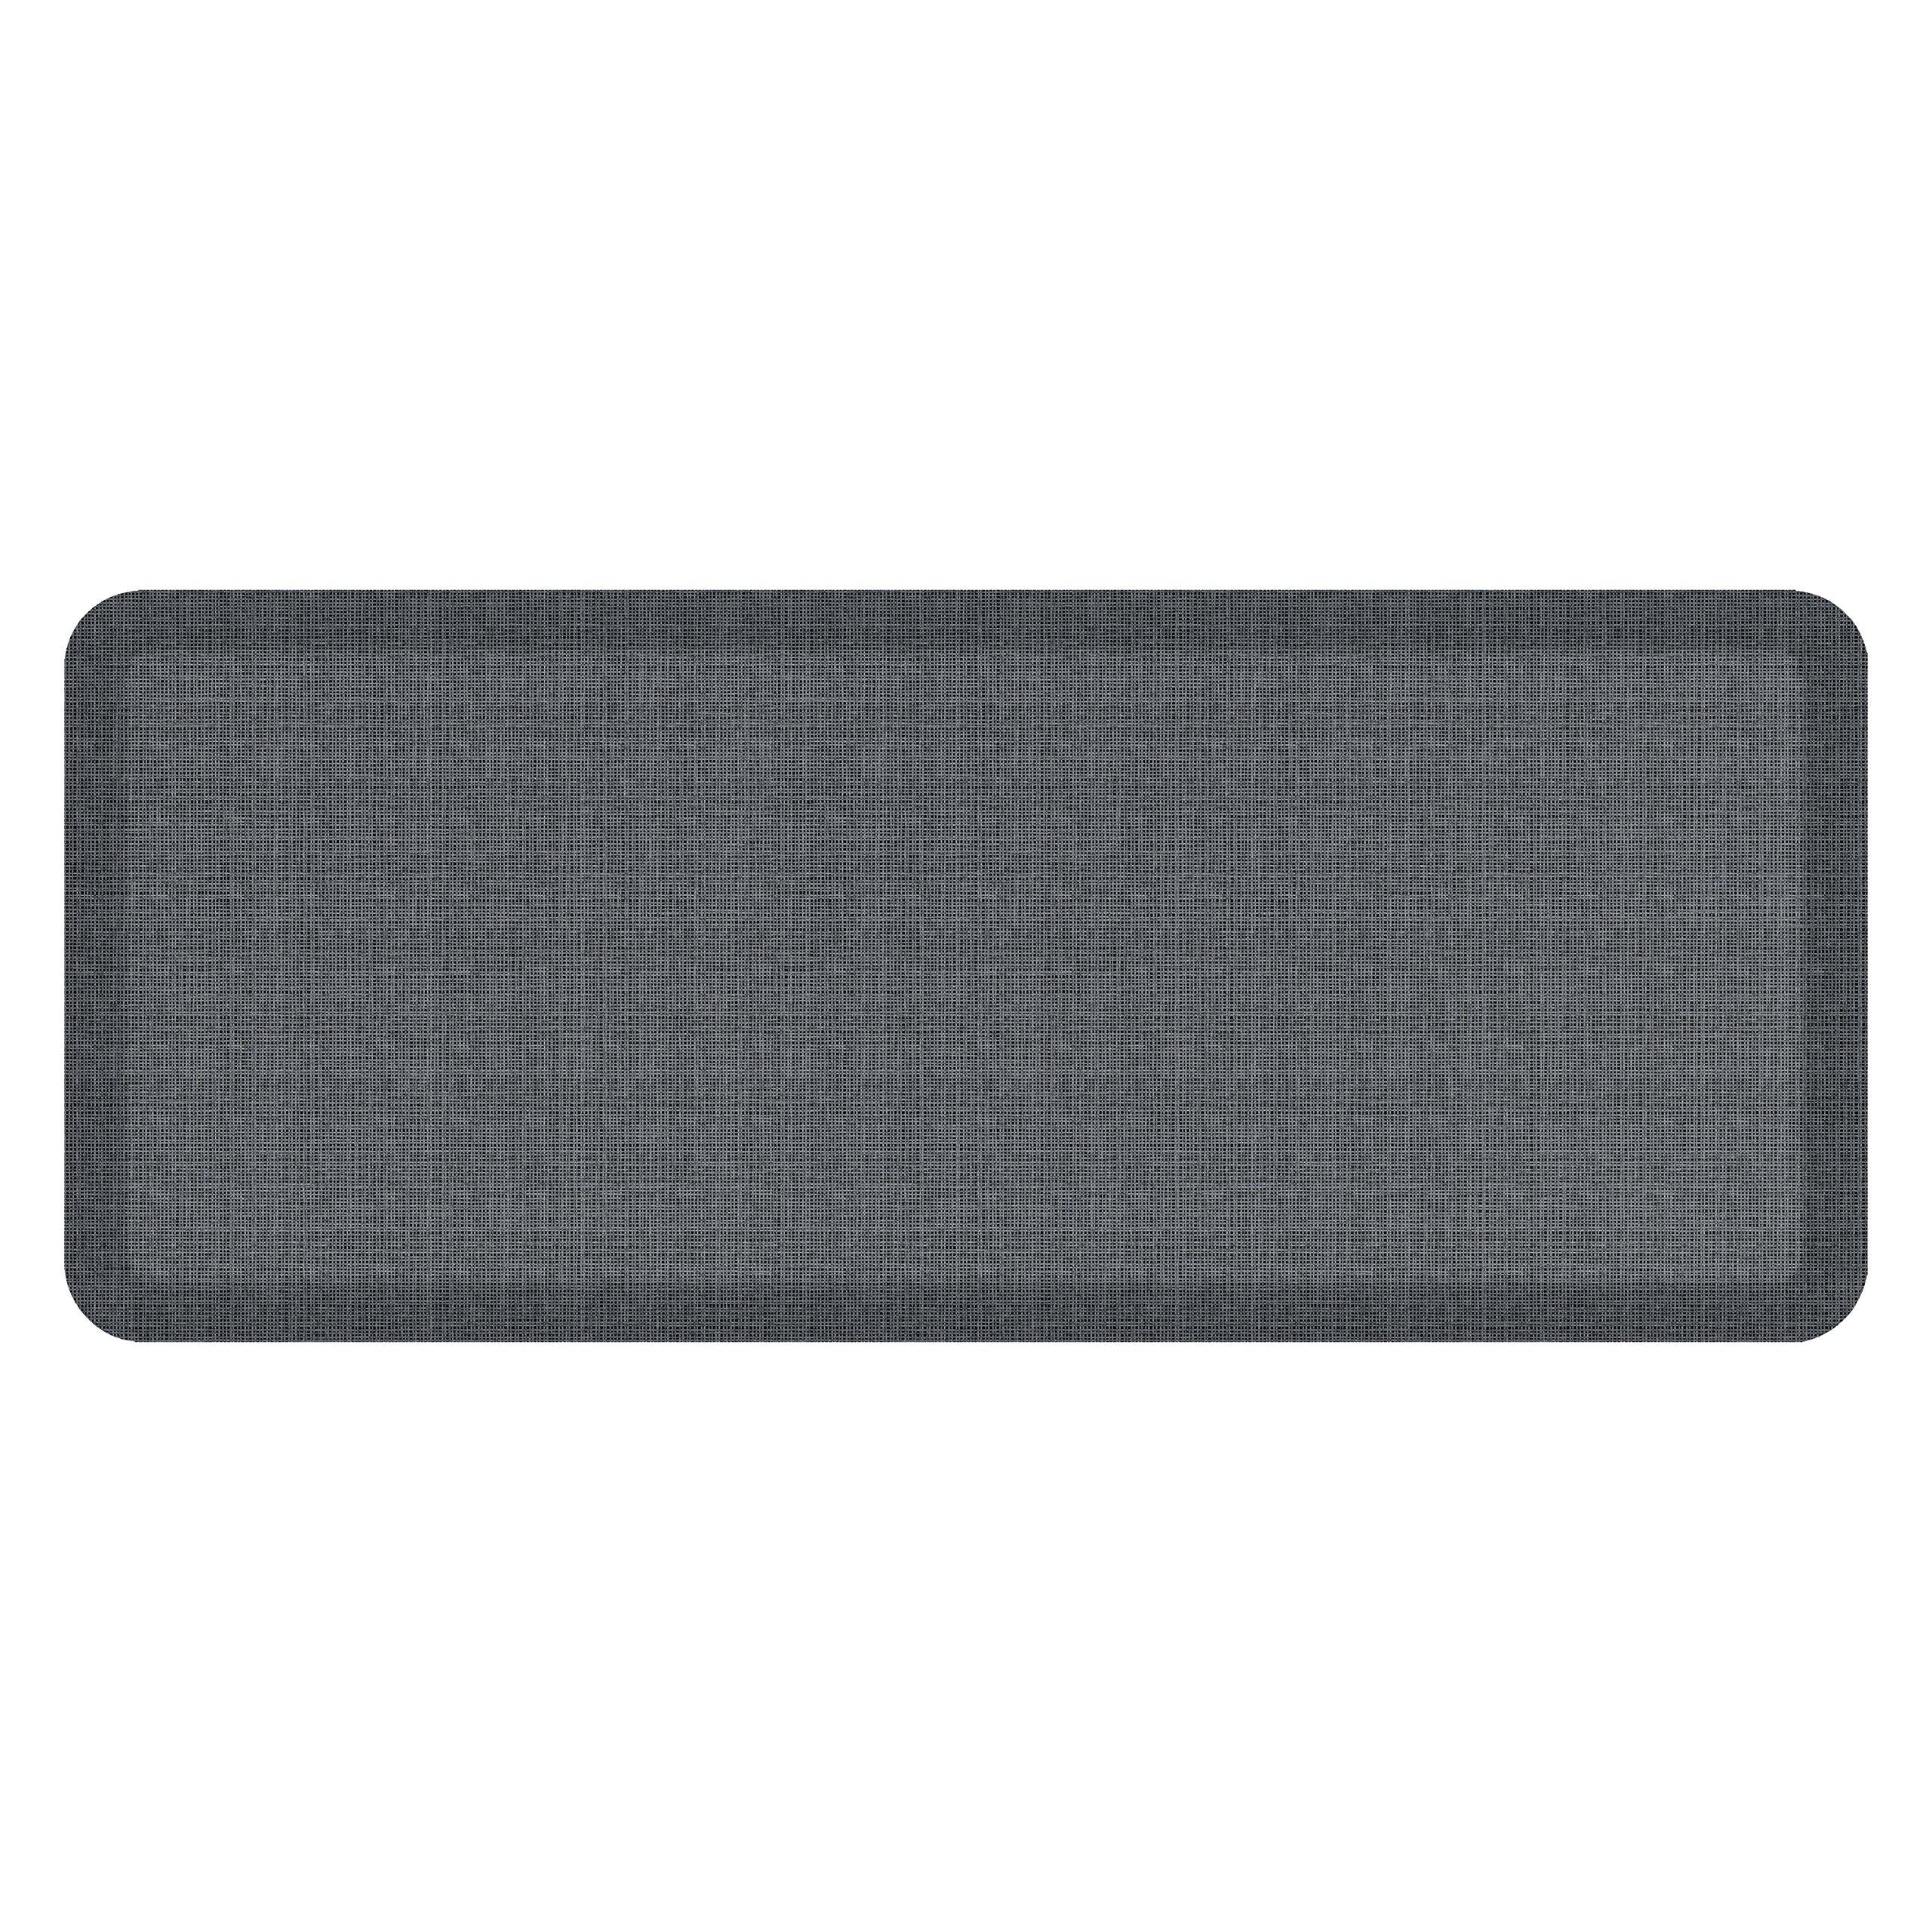 "NewLife by GelPro Anti-Fatigue Designer Comfort Kitchen Floor Mat, 20x48'', Tweed Nickel Grey Stain Resistant Surface with 3/4"" Thick Ergo-foam Core for Health and Wellness by NewLife by GelPro (Image #1)"